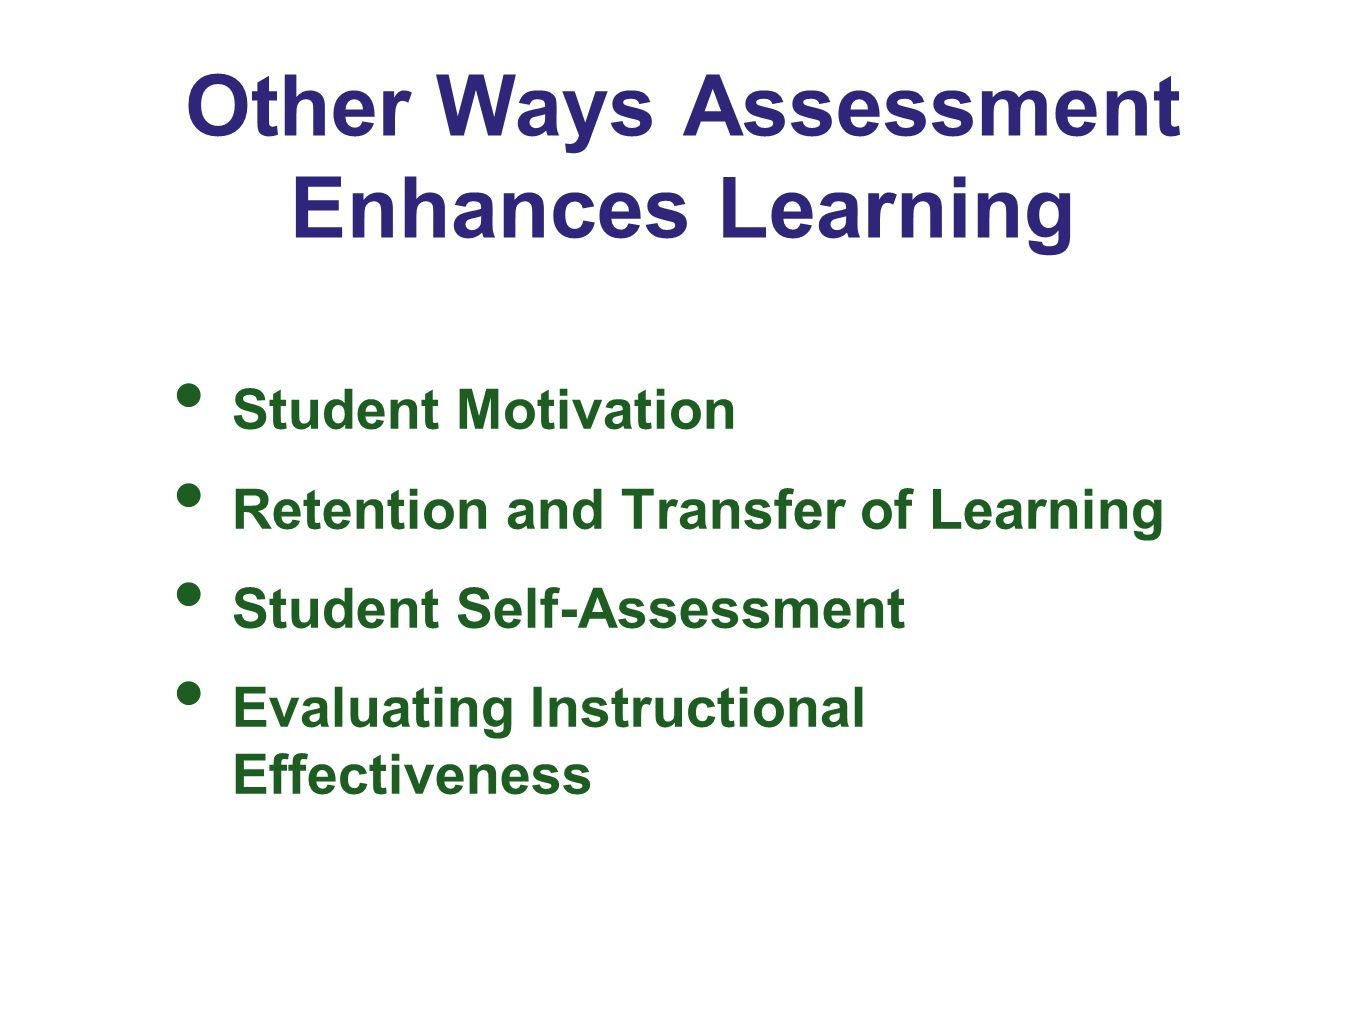 Other Ways Assessment Enhances Learning